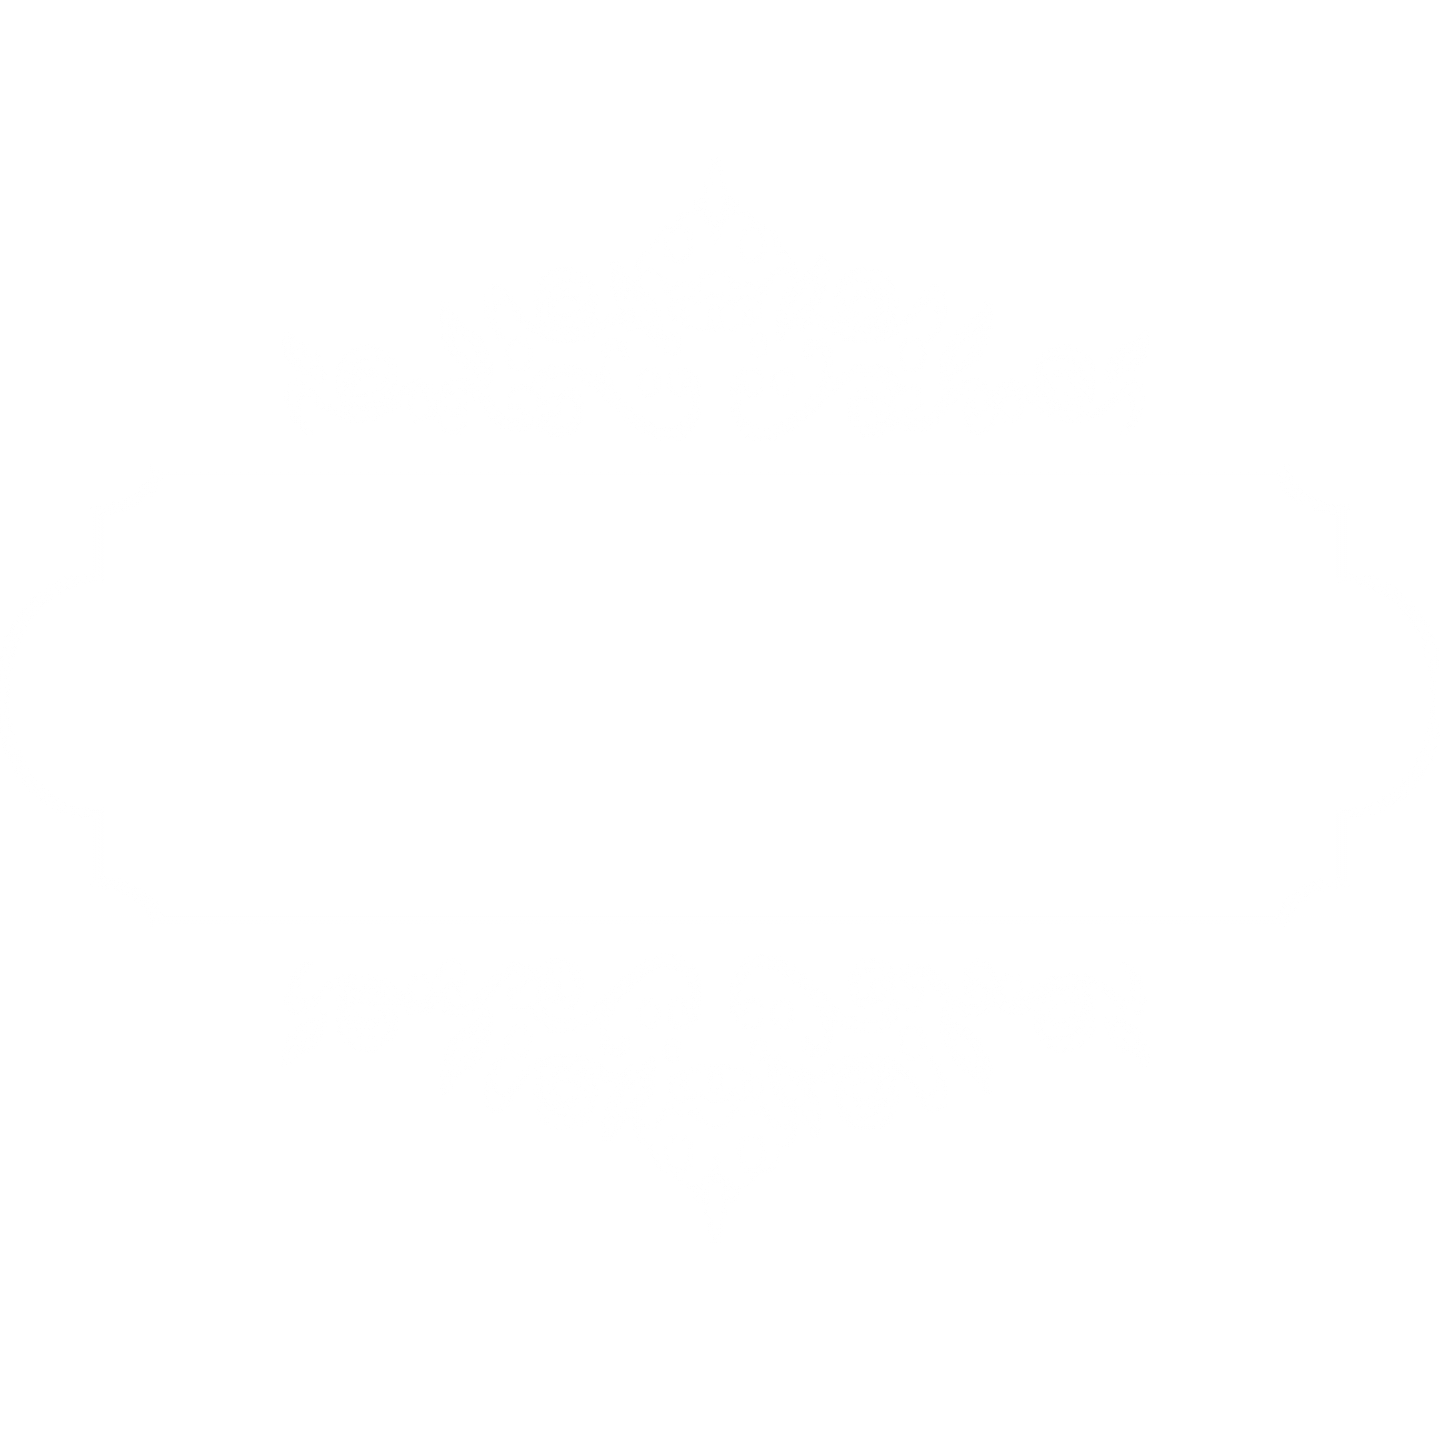 M J Pike Carpentry